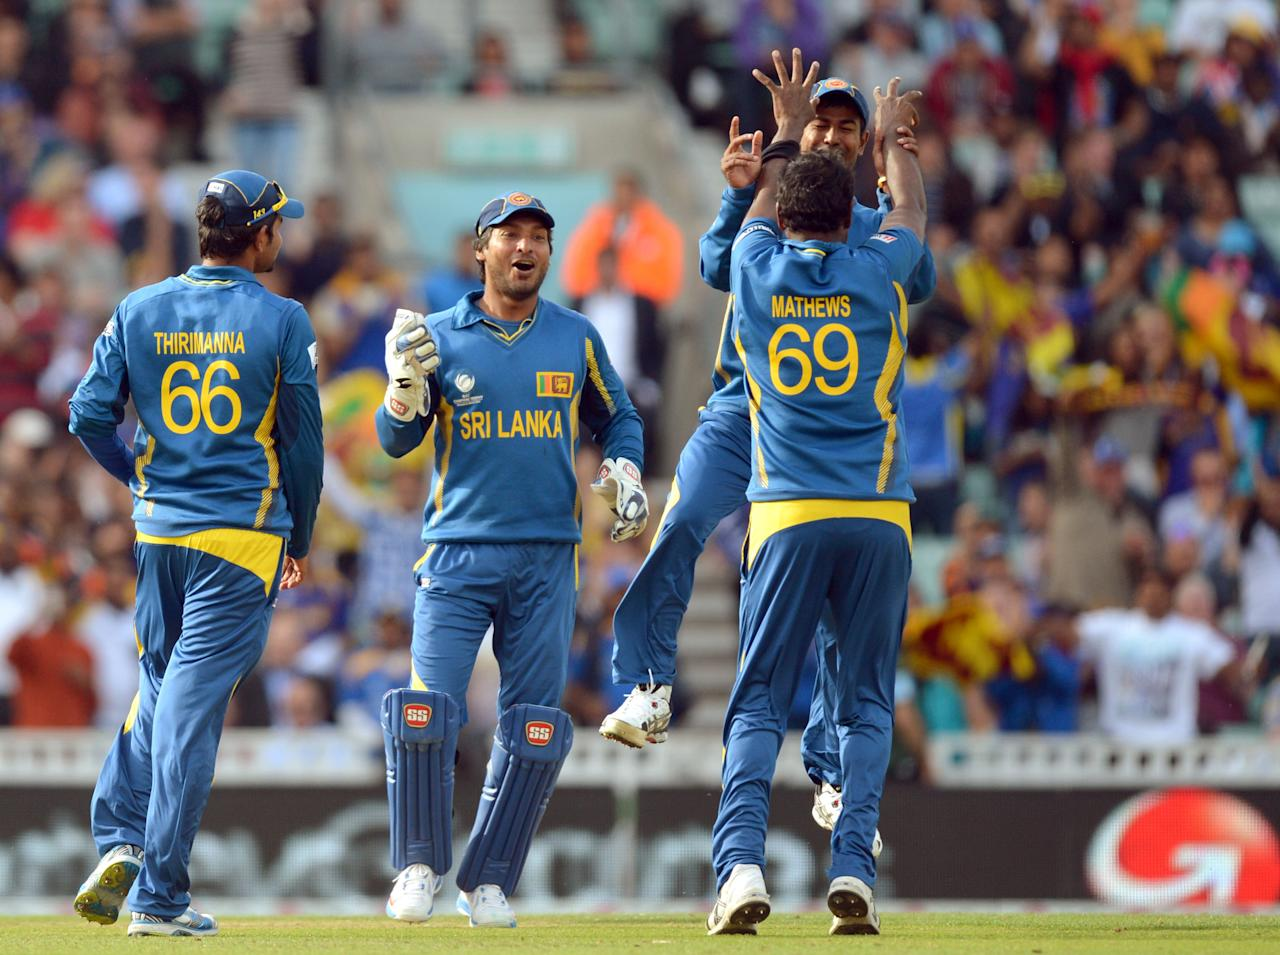 Sri Lanka's captain Angelo Matthews (right) celebrates bowling out Australia's Mitchell Marsh (not pictured) during the ICC Champions Trophy match at The Oval, London.